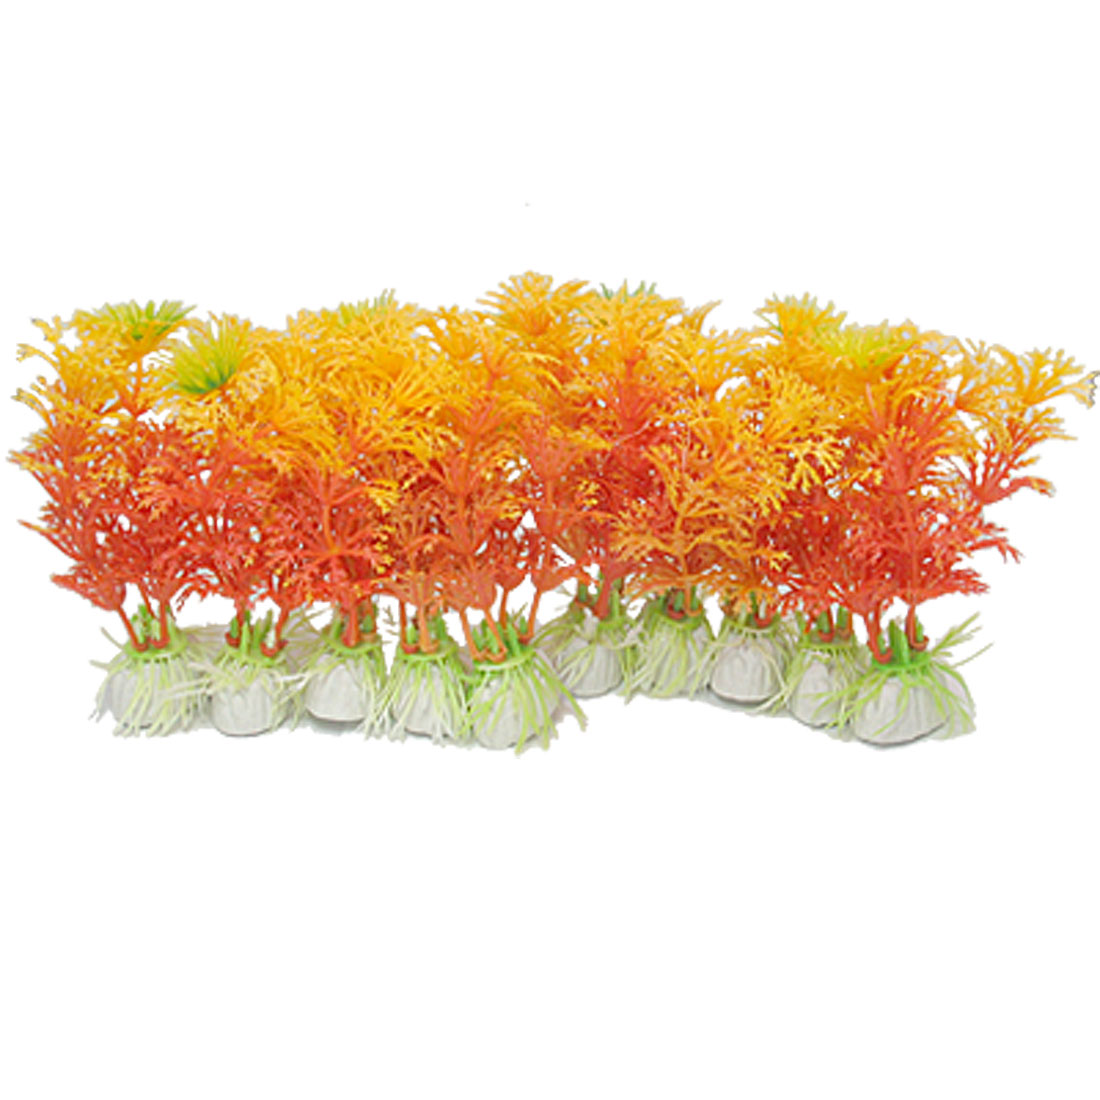 Decoration Aquarium Plants Plastic 10pcs for Fish Tank